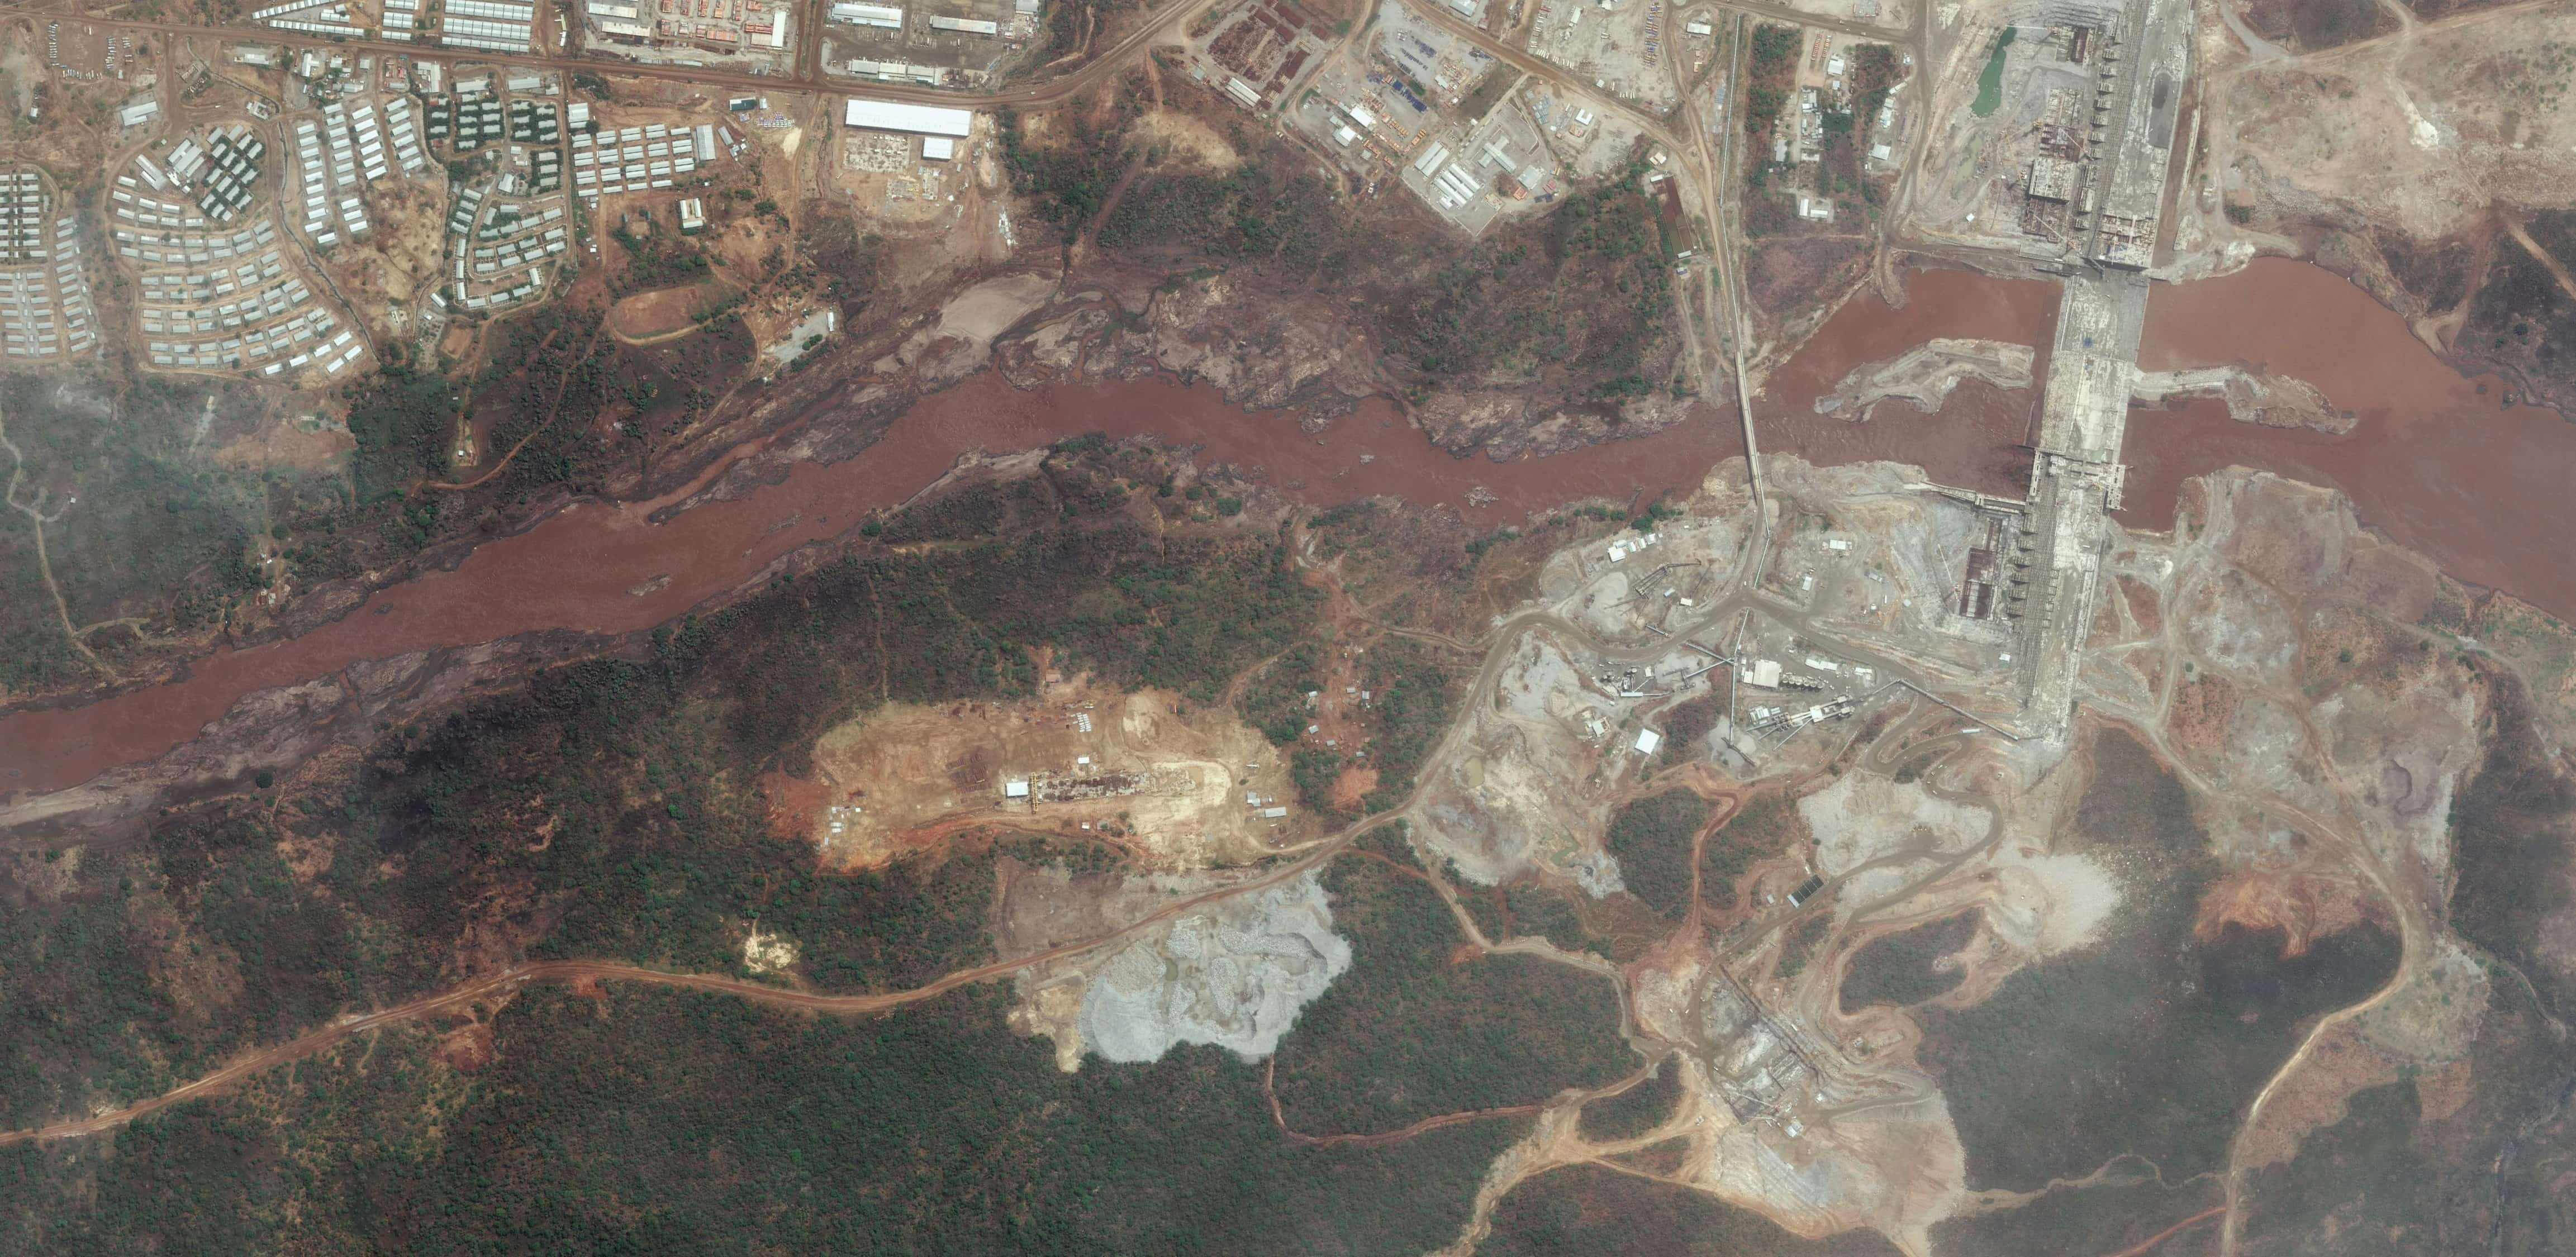 The Grand Ethiopian Renaissance Dam under construction, May 2016 (Photo: DigitalGlobe/Getty Images)